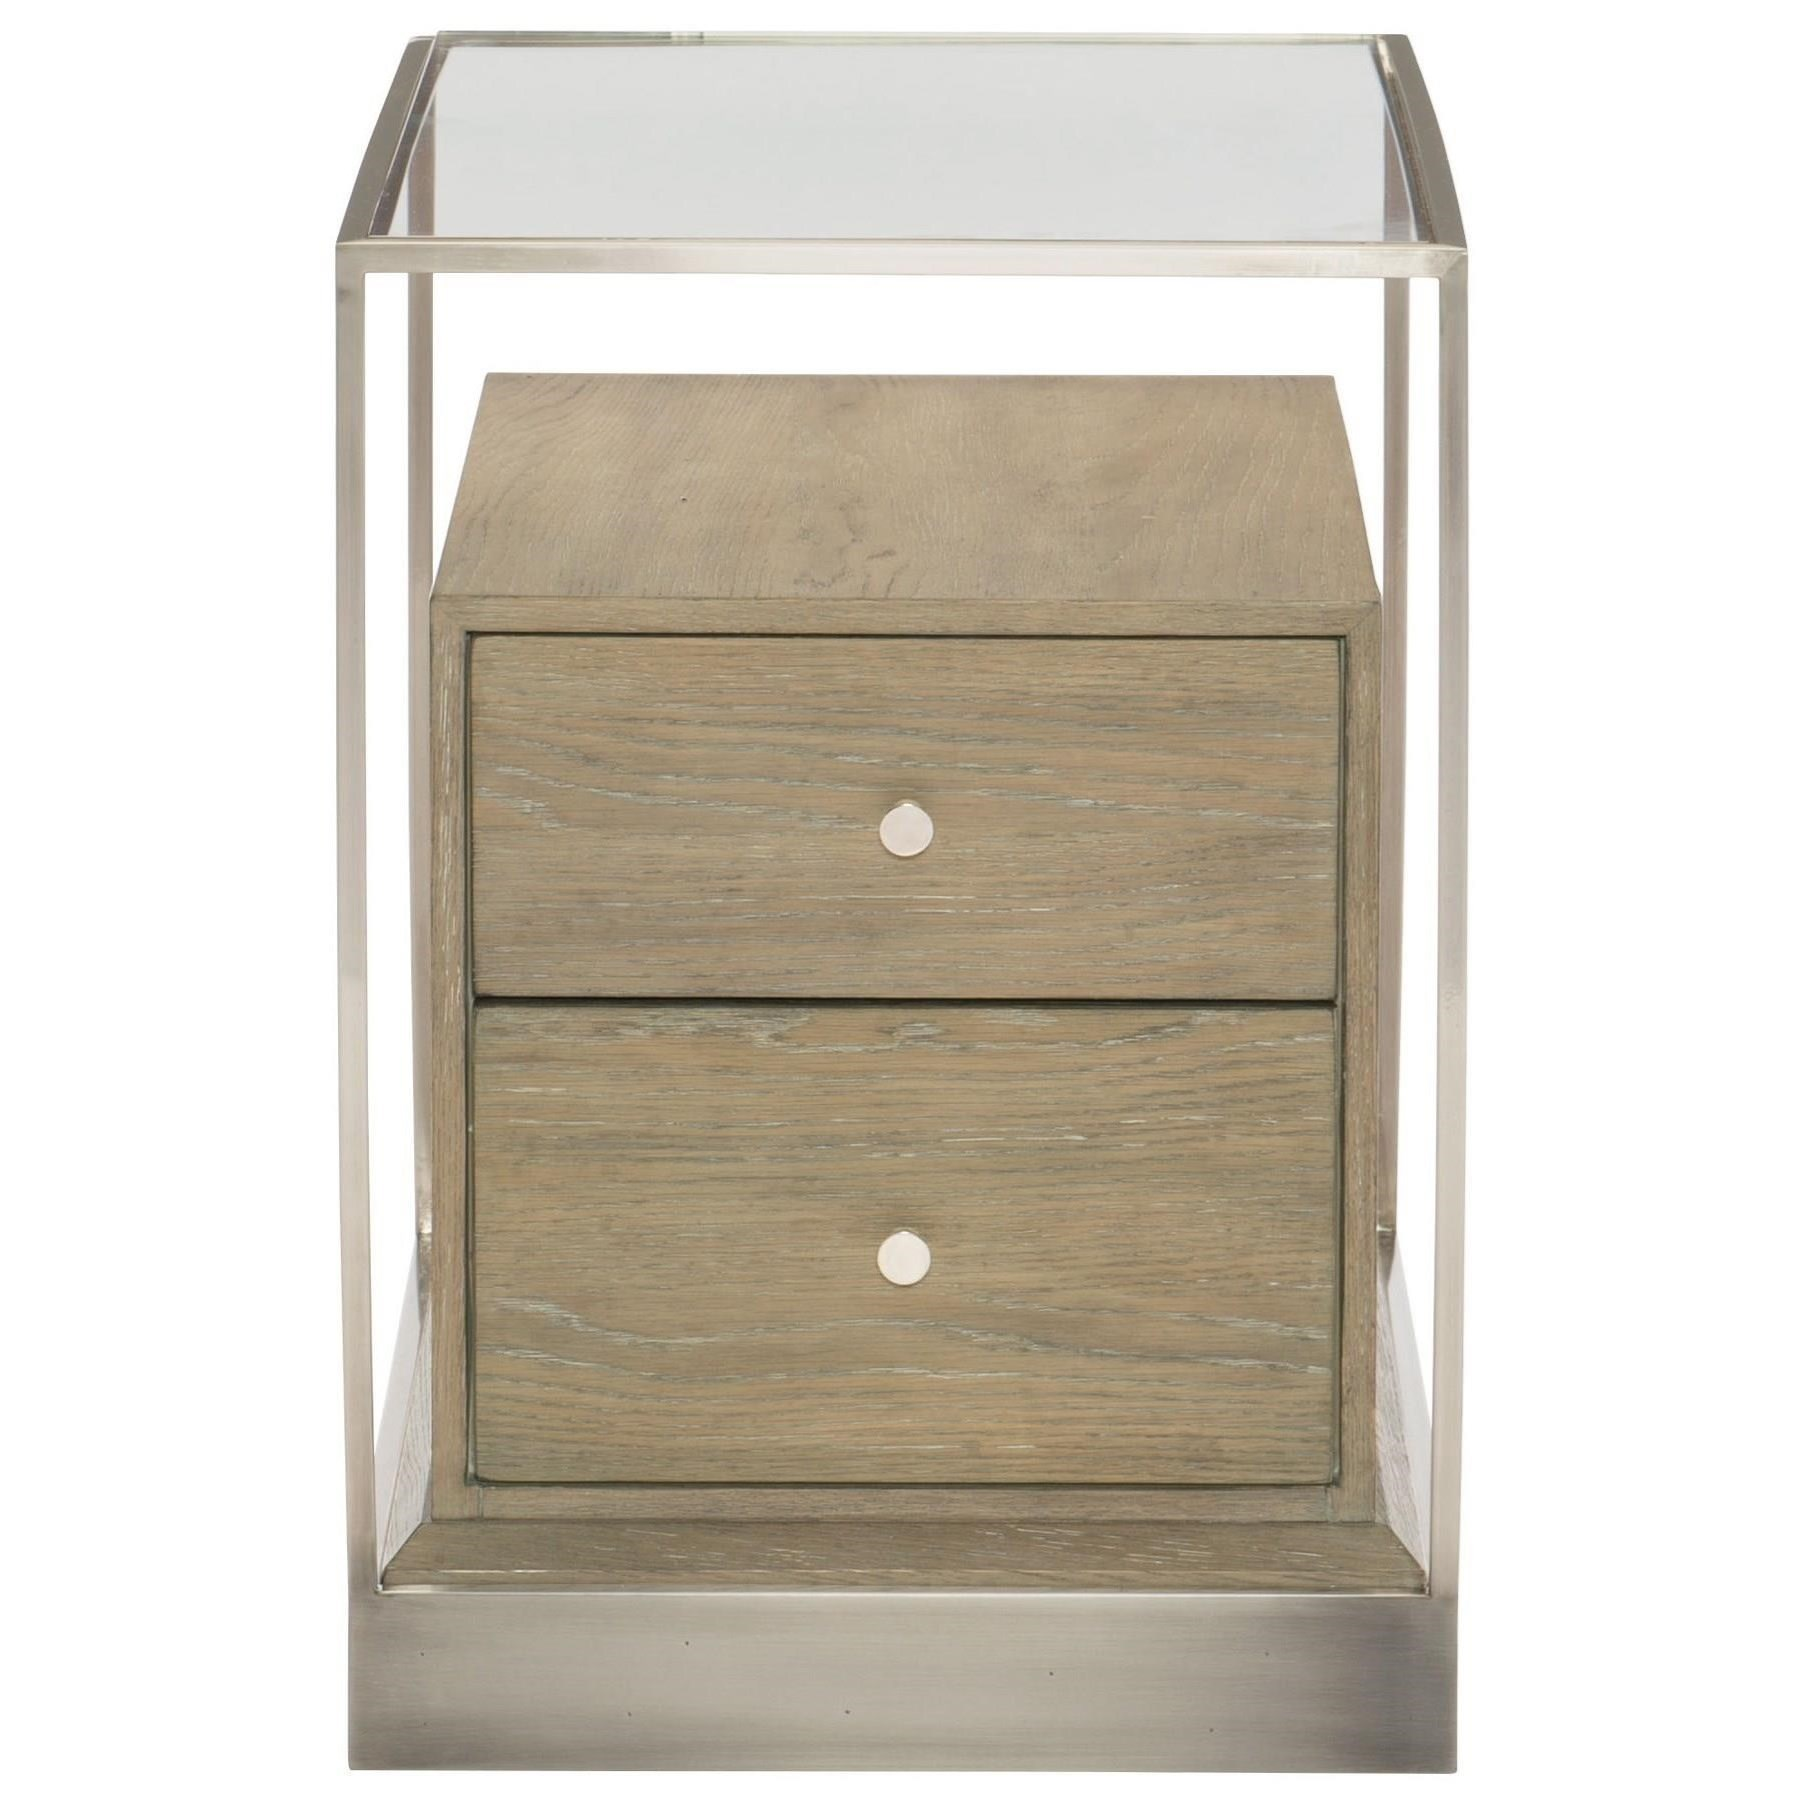 Bernhardt Bernhardt Interiors   Dempsey Contemporary End Table With  Stainless Steal Frame And Base